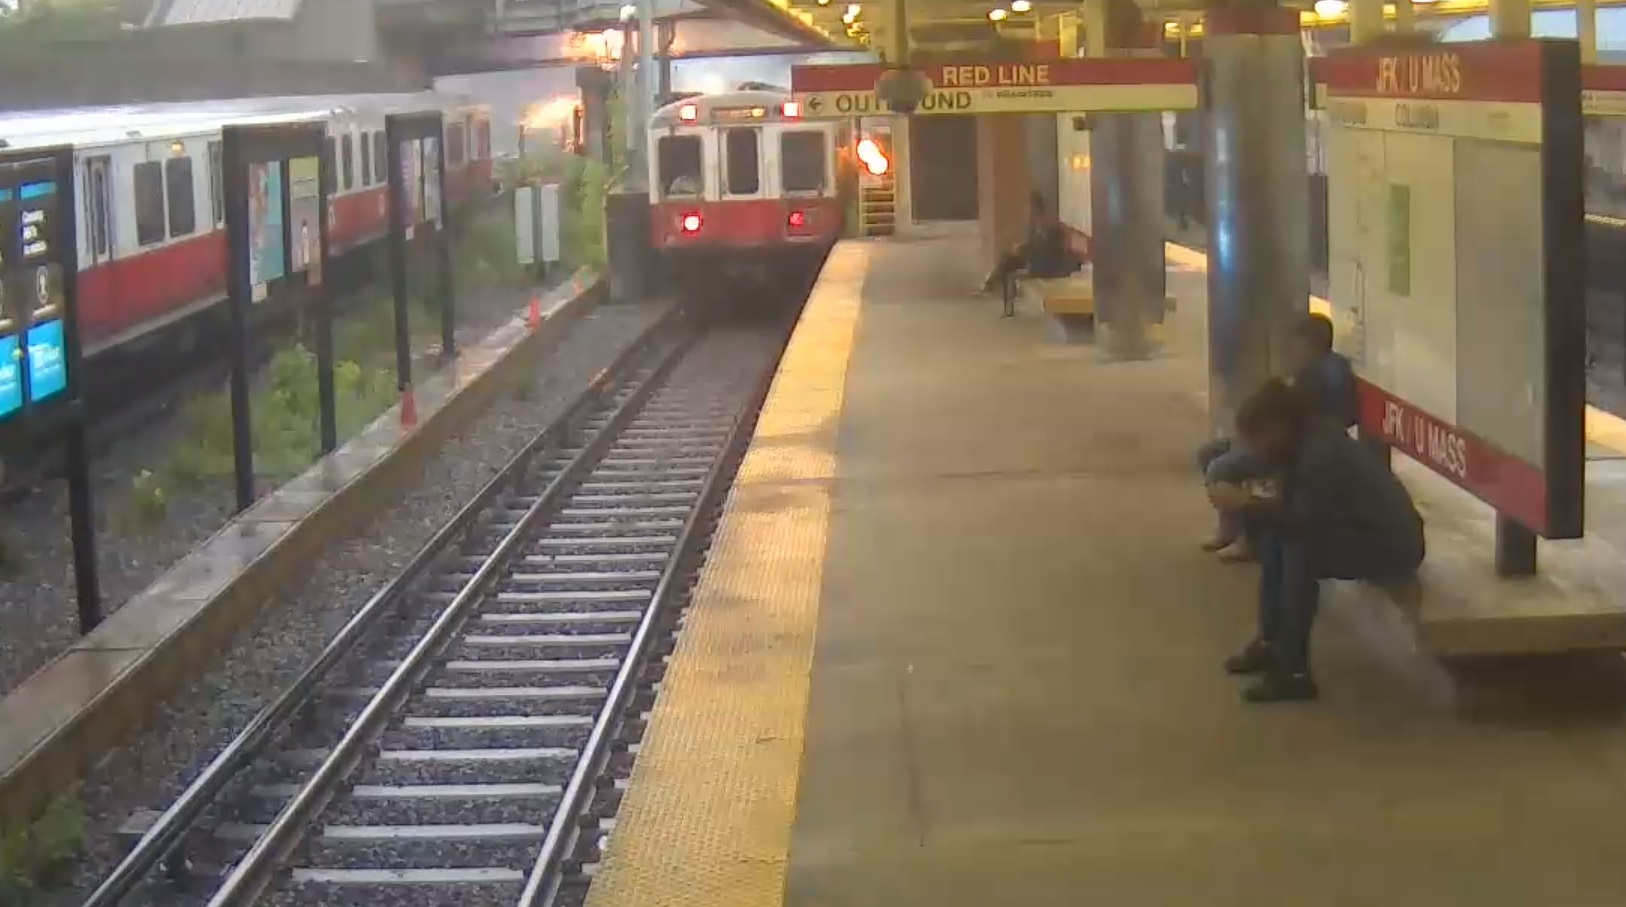 Video showing the June 11 Red Line derailment at J